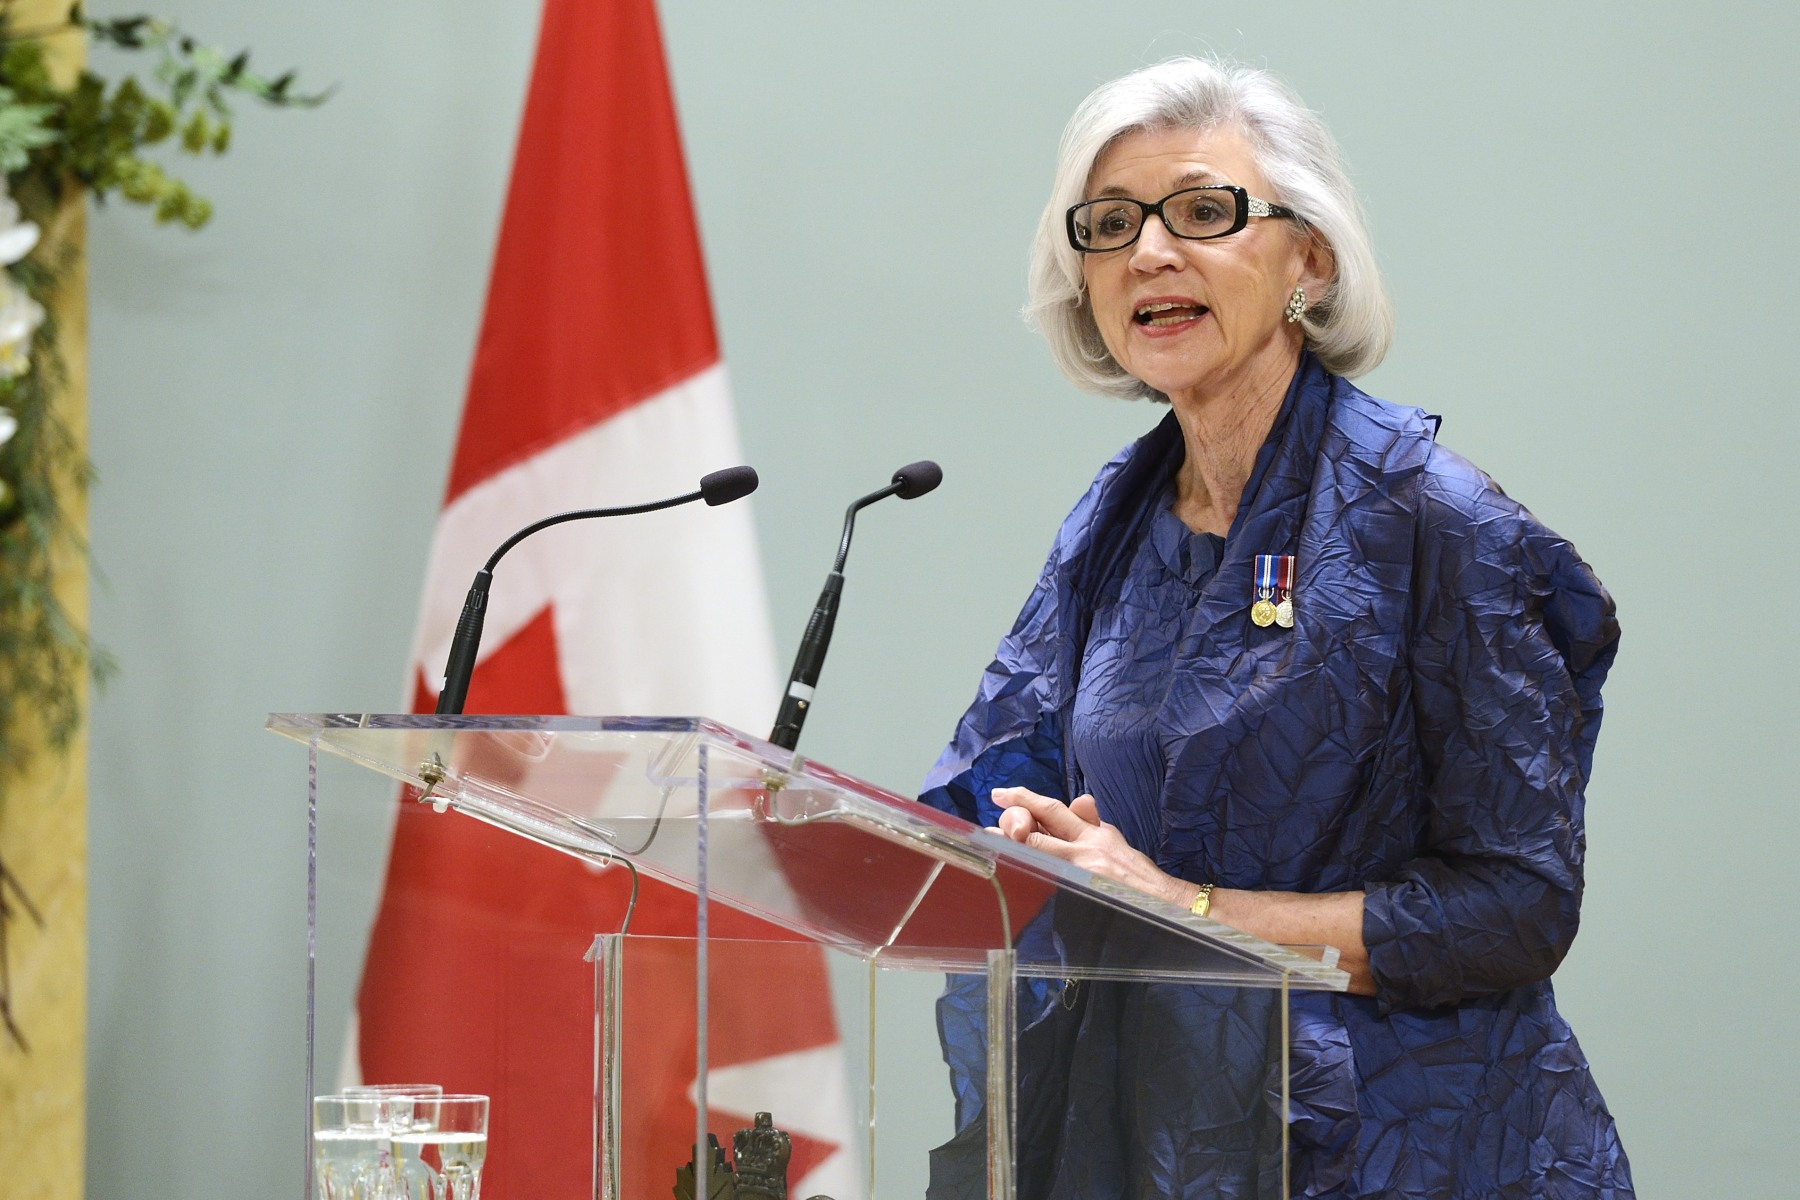 While Their Excellencies were participating in Her Majesty The Queen's 90th anniversary celebrations in London, England, The Right Honourable Beverley McLachlin, Deputy Governor General and Chief Justice of Canada, will present the 2016 Governor General's Performing Arts Awards (GGPAA) at Rideau Hall.